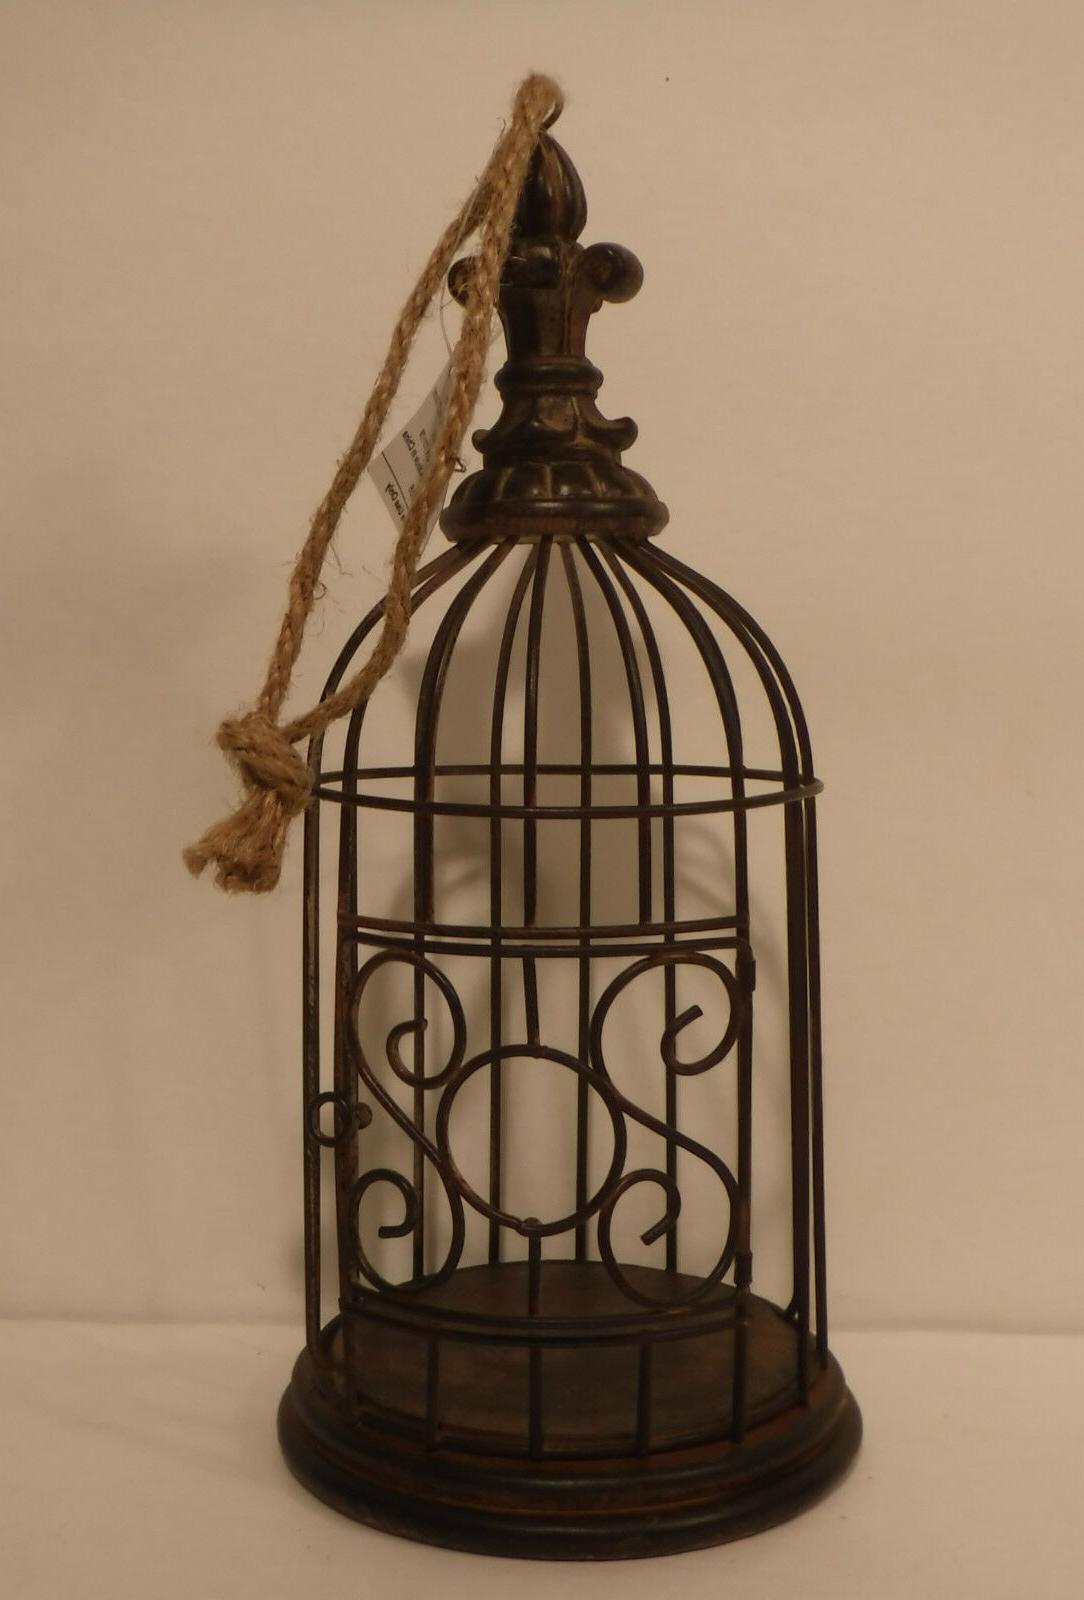 Home Accents Hanging Metal Bird Cage W/Wood Base Home Decor